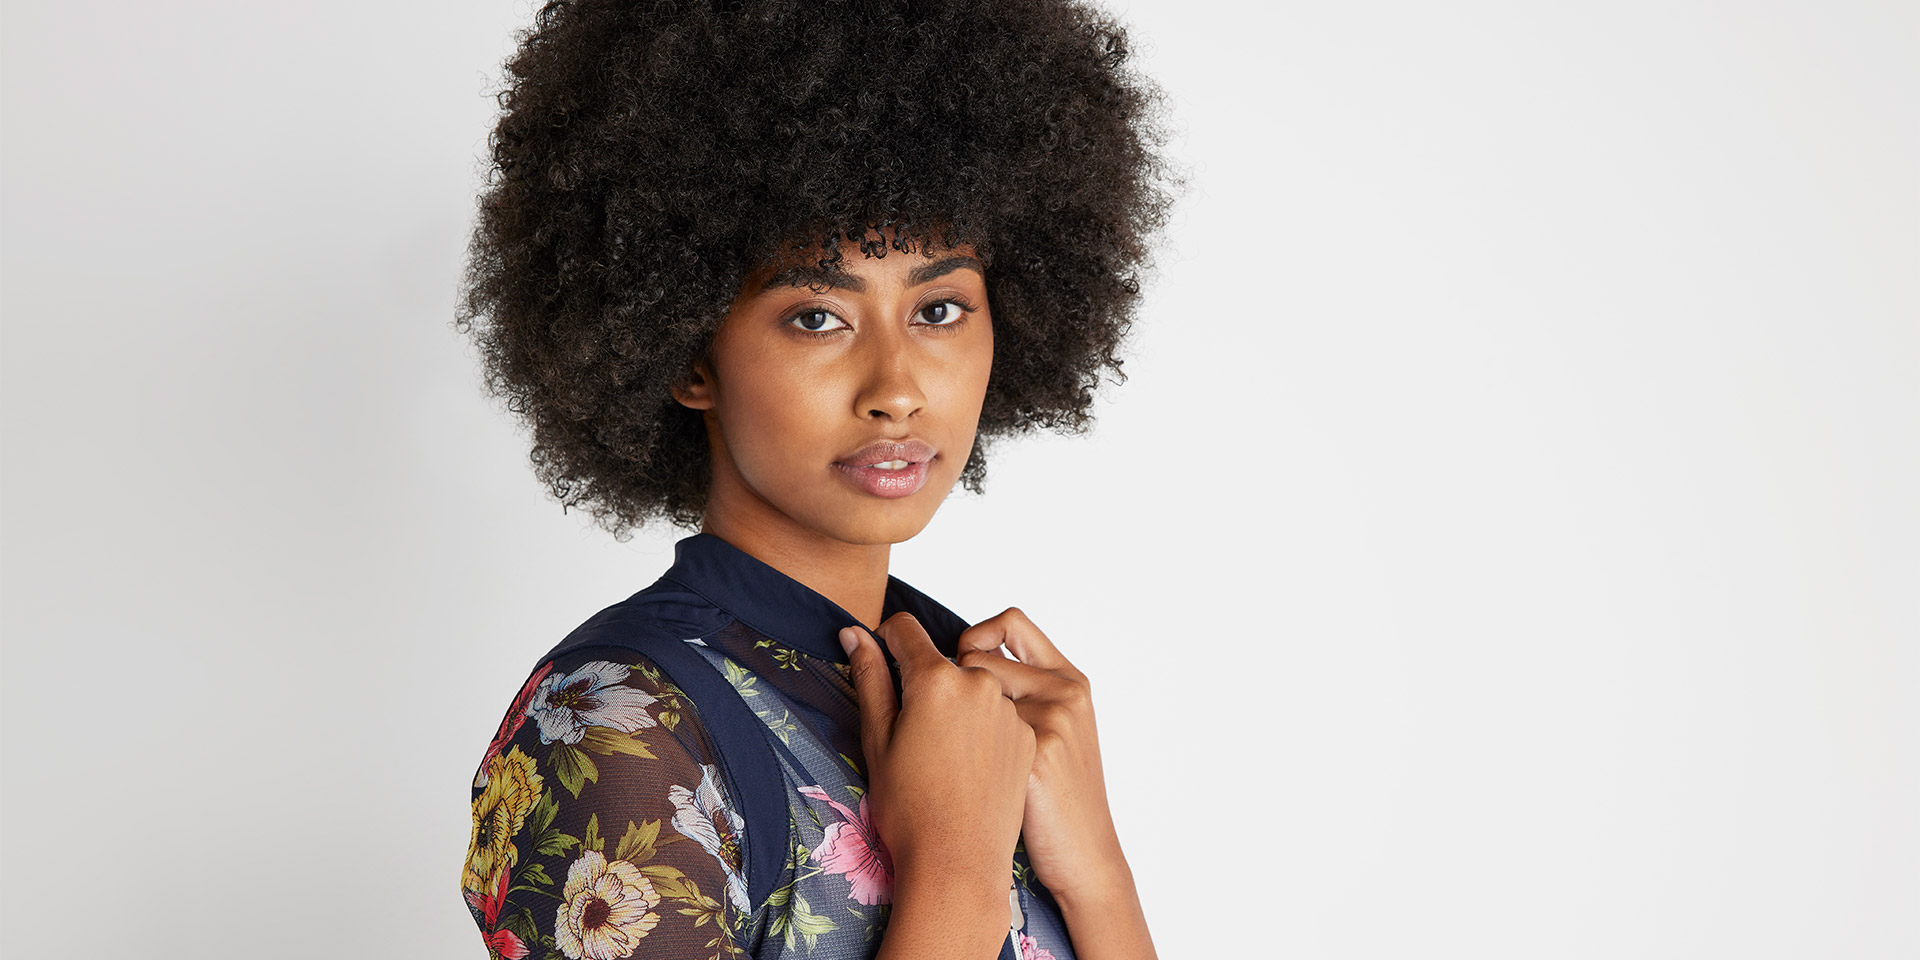 Woman wearing a floral Anatomie top